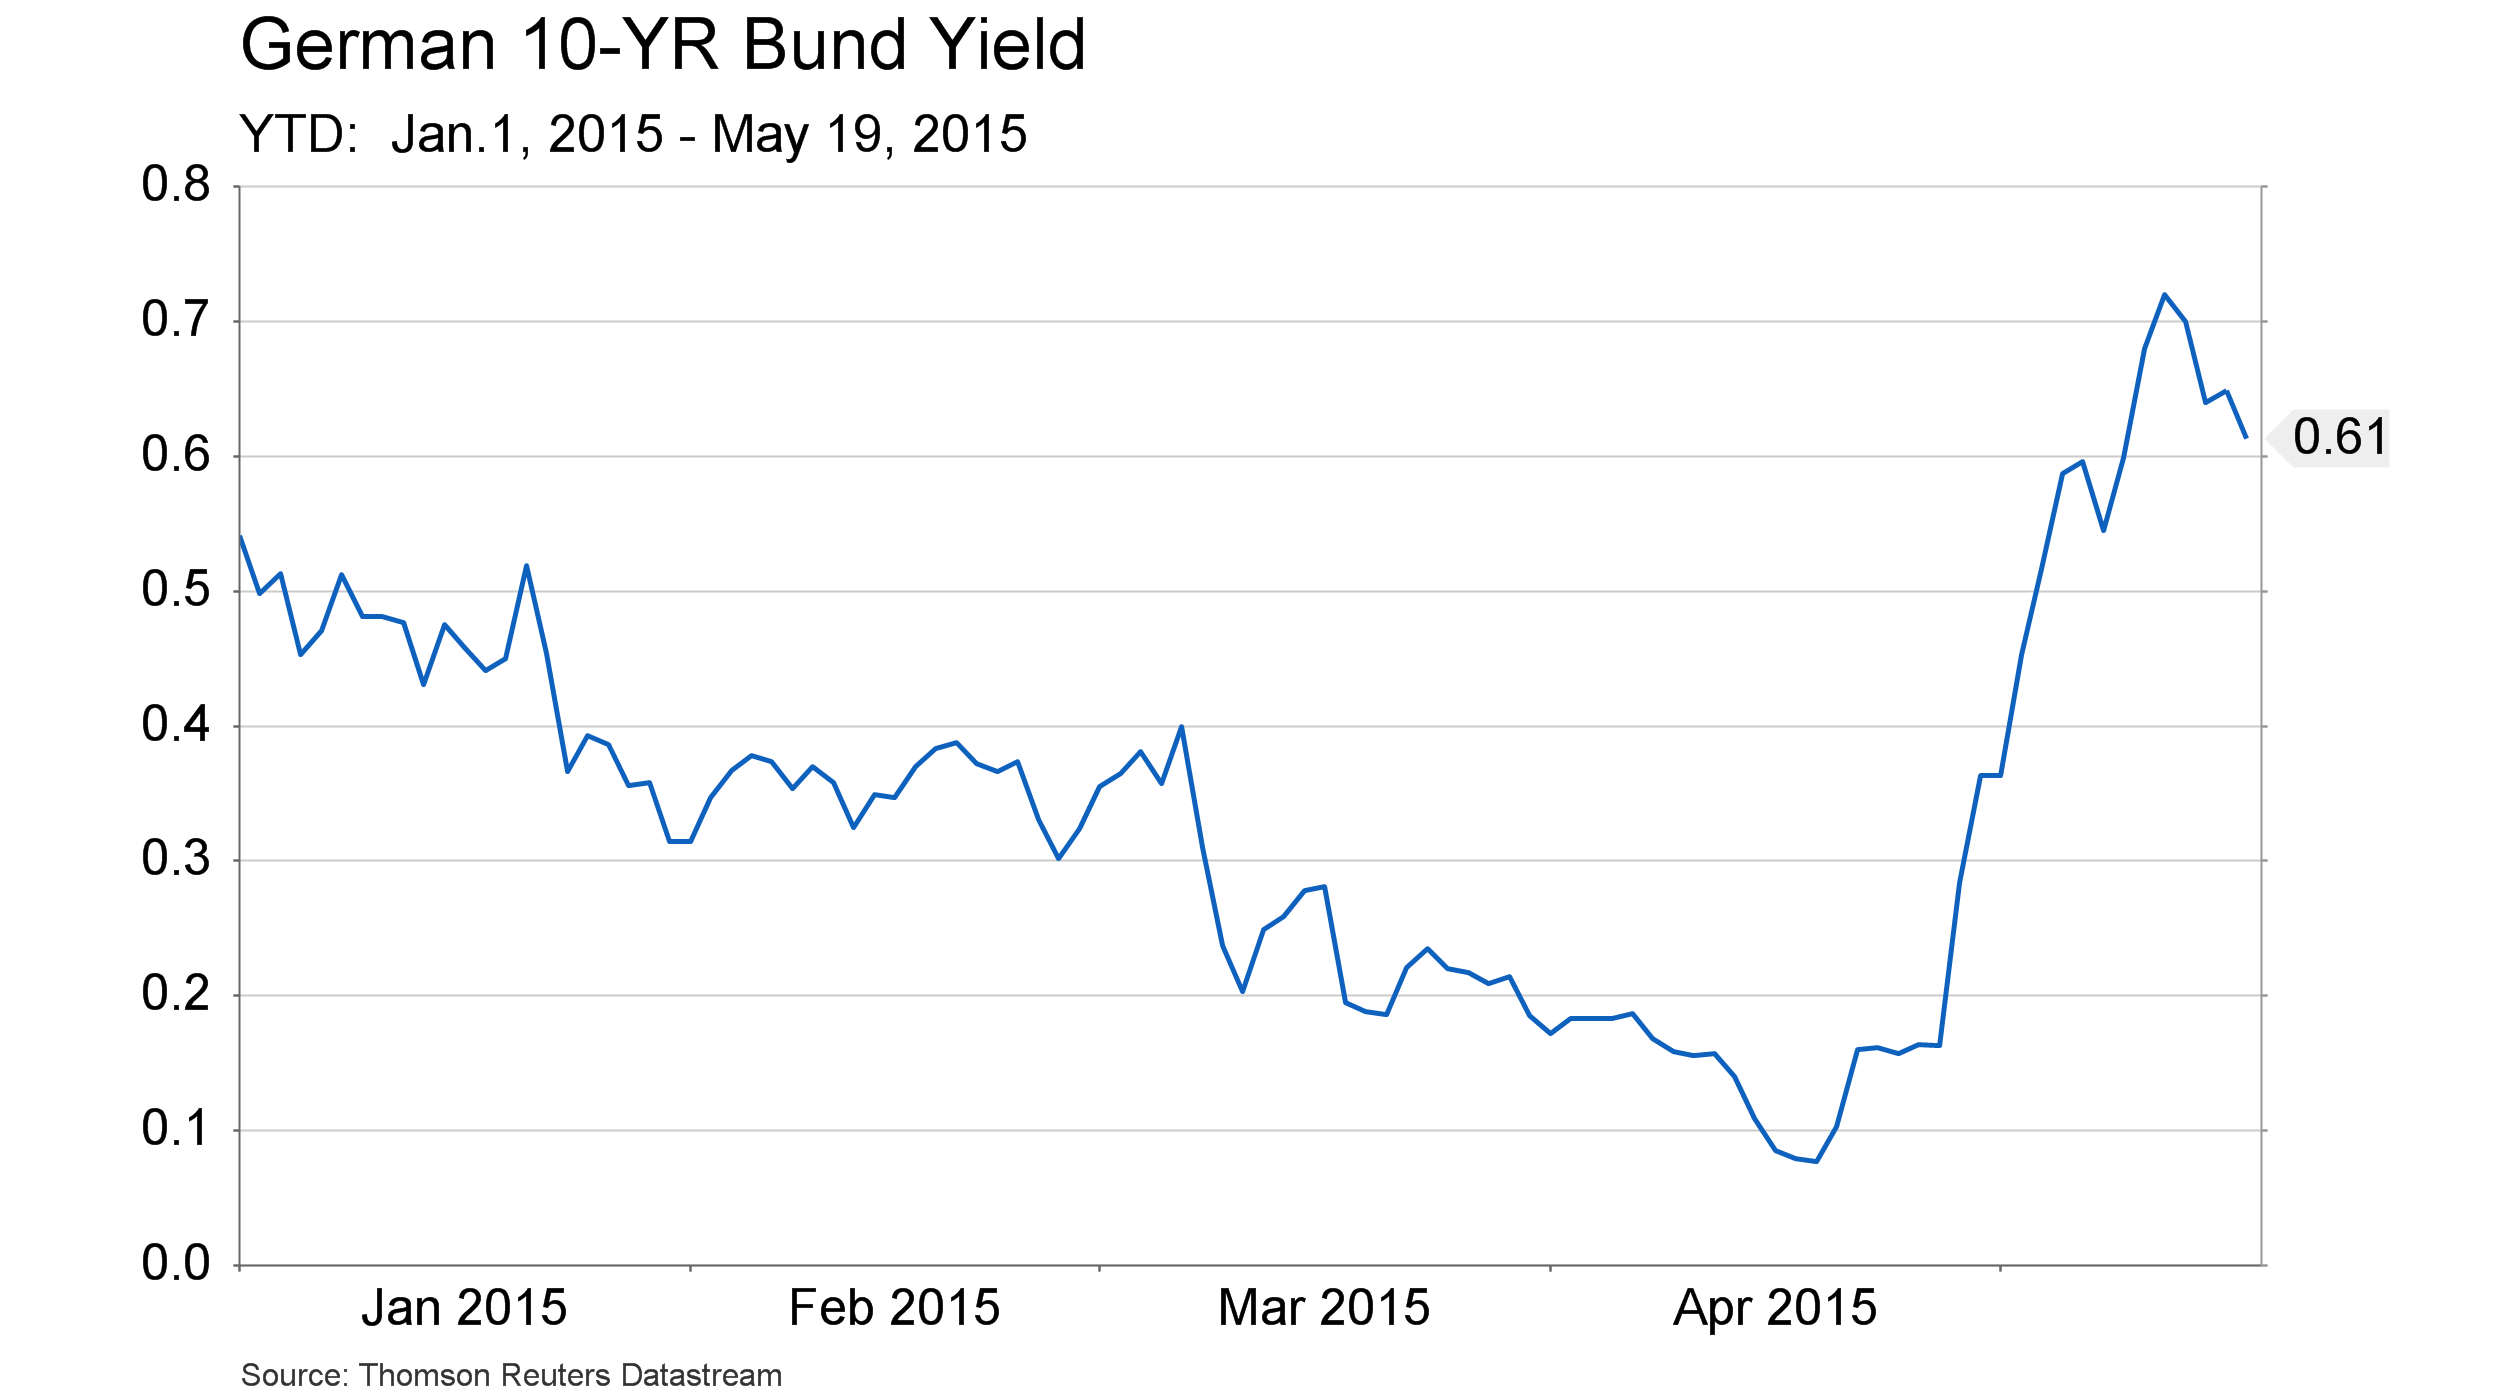 German 10 YR BOnd yield - YTD